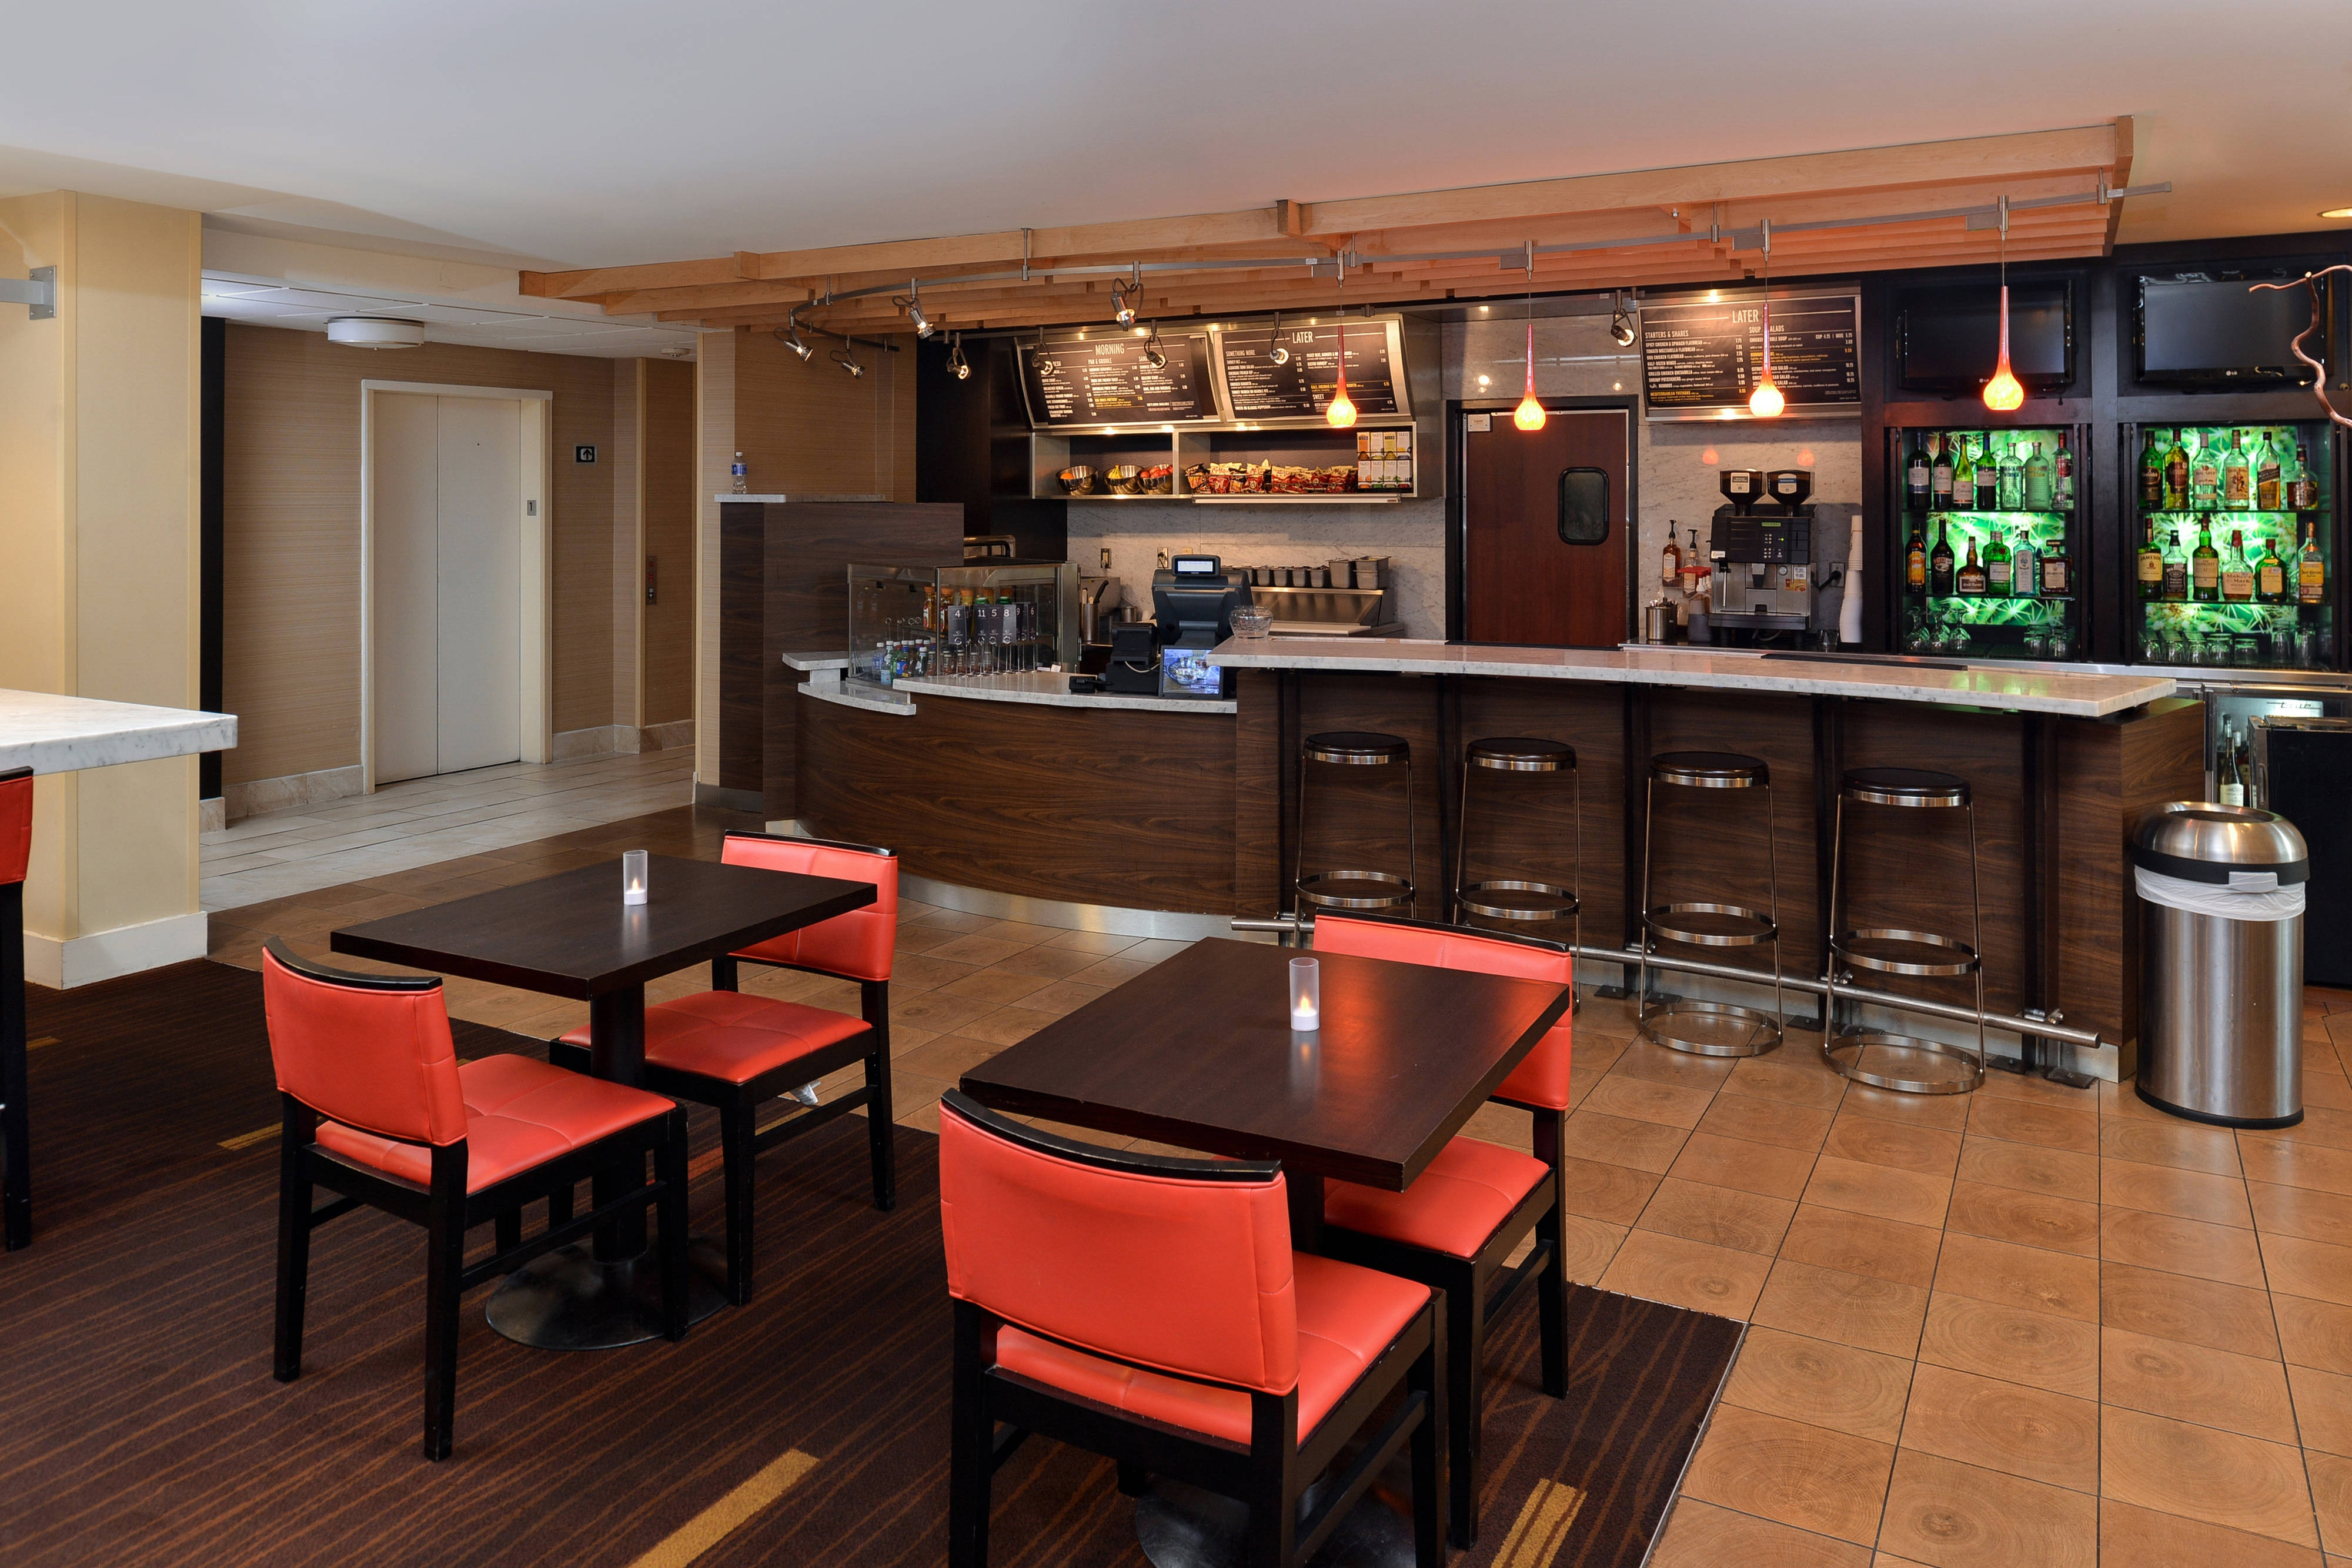 Courtyard by Marriott Laredo Bistro Seating